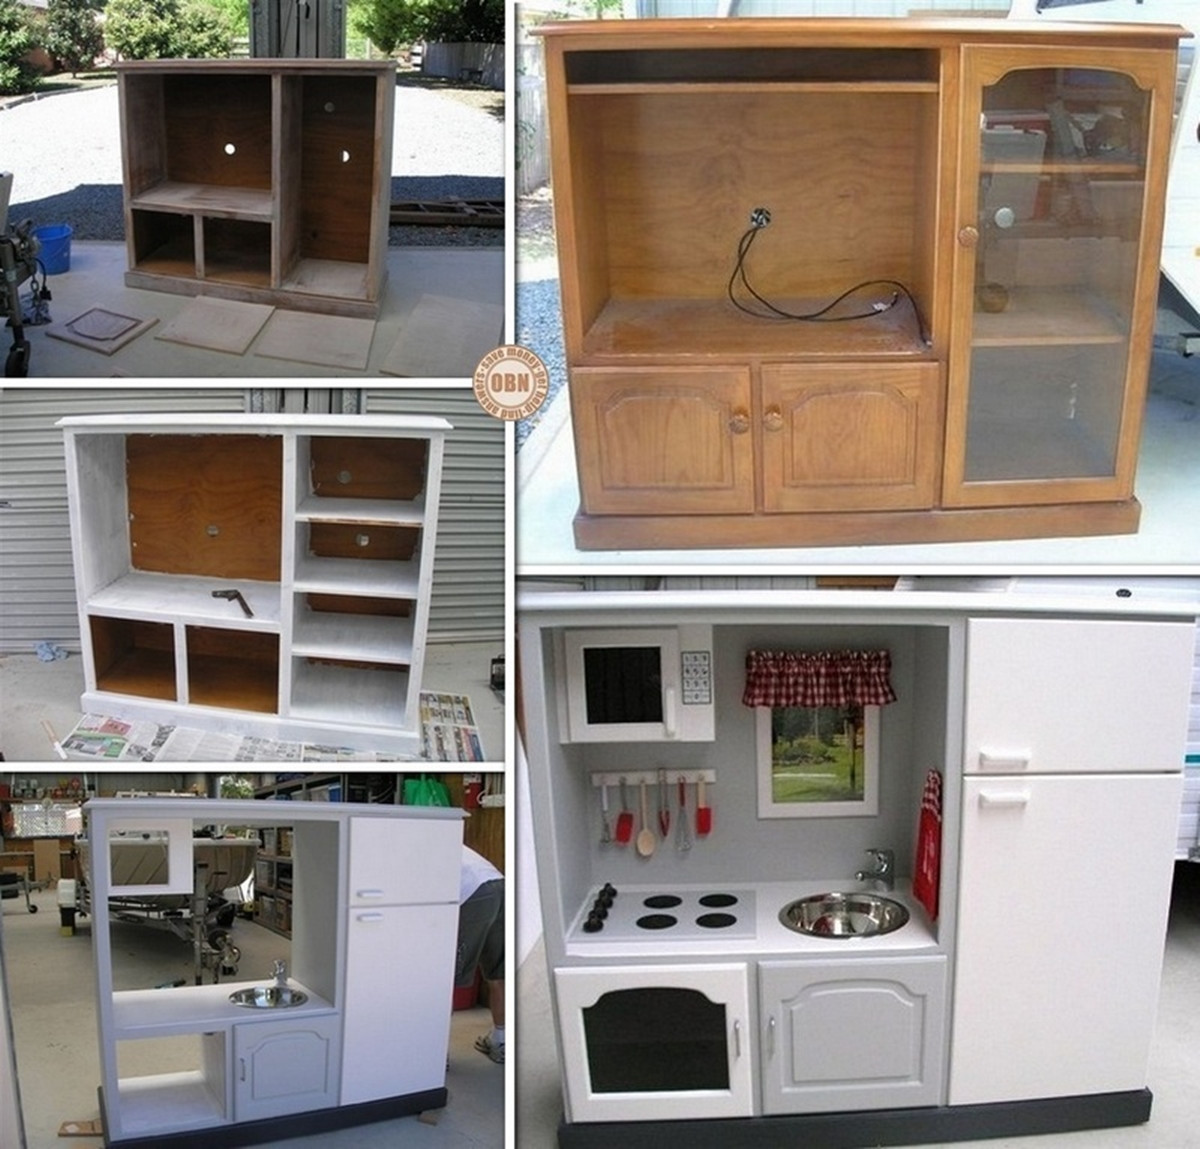 Best ideas about Kids Kitchen DIY . Save or Pin Wonderful DIY Kids Play Kitchen from Old Nightstand Now.